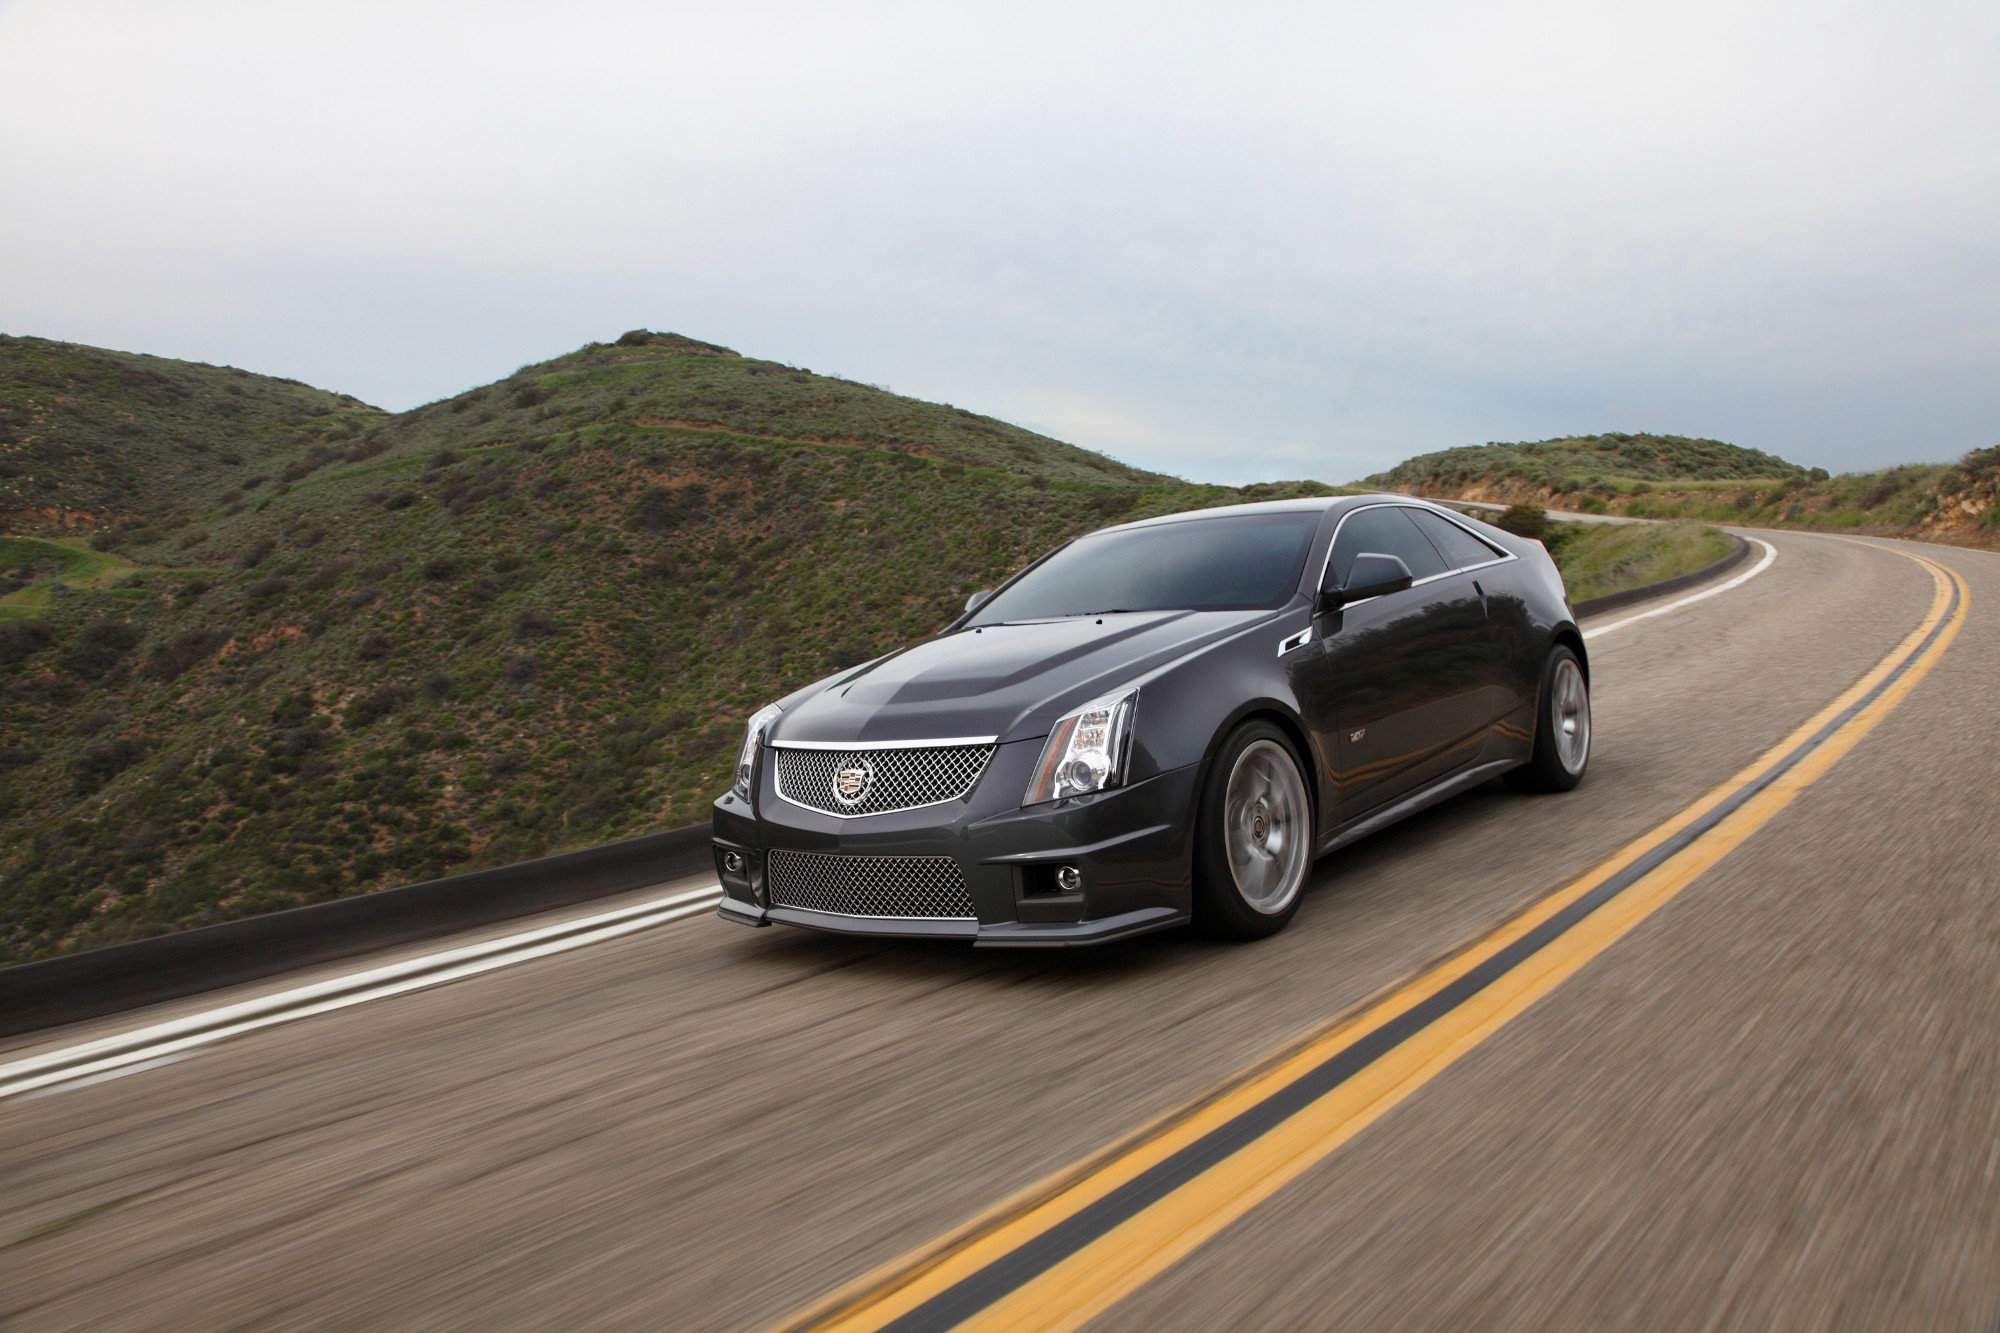 2013 cadillac cts v review ratings specs prices and photos the car connection. Black Bedroom Furniture Sets. Home Design Ideas